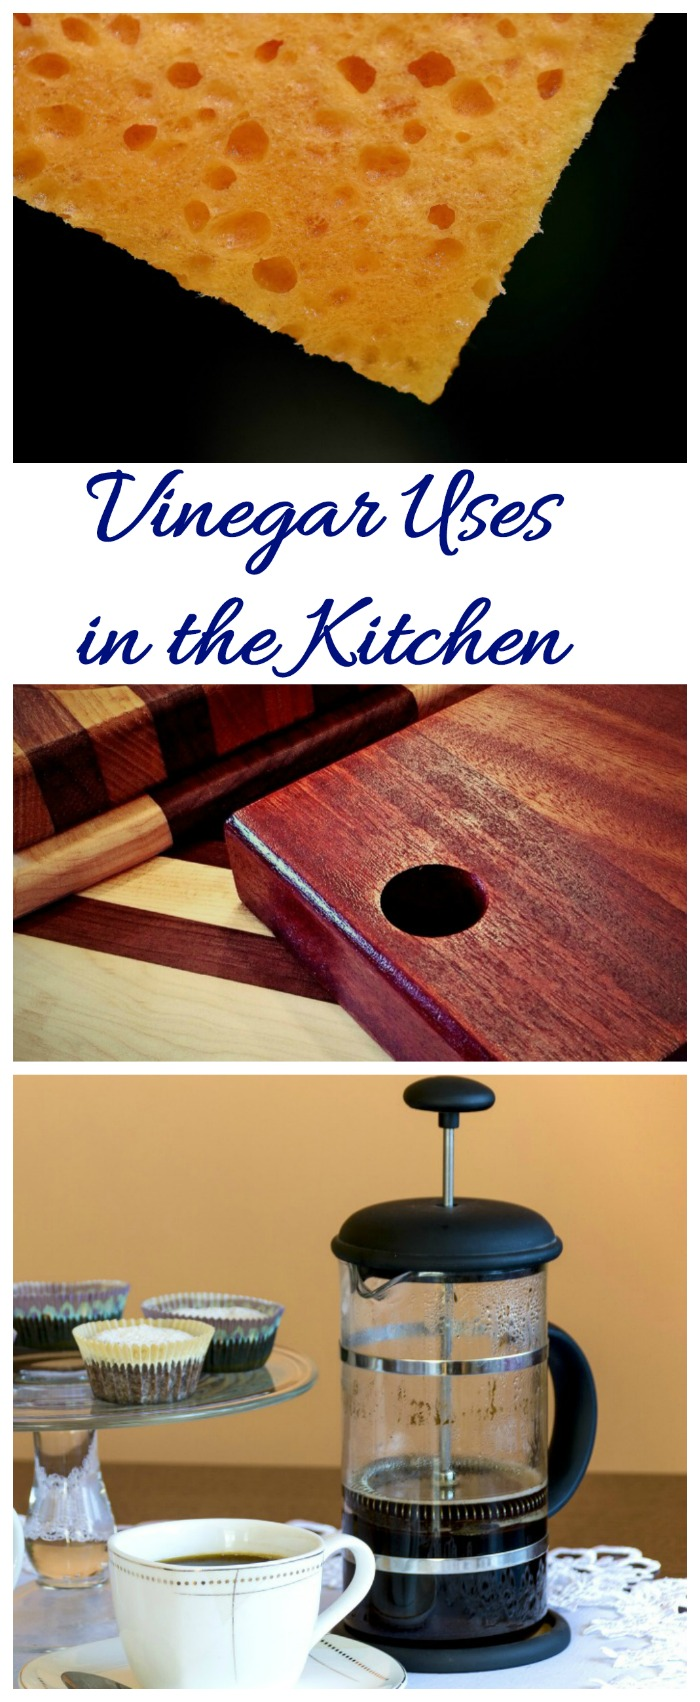 The kitchen is a great place to use vinegar